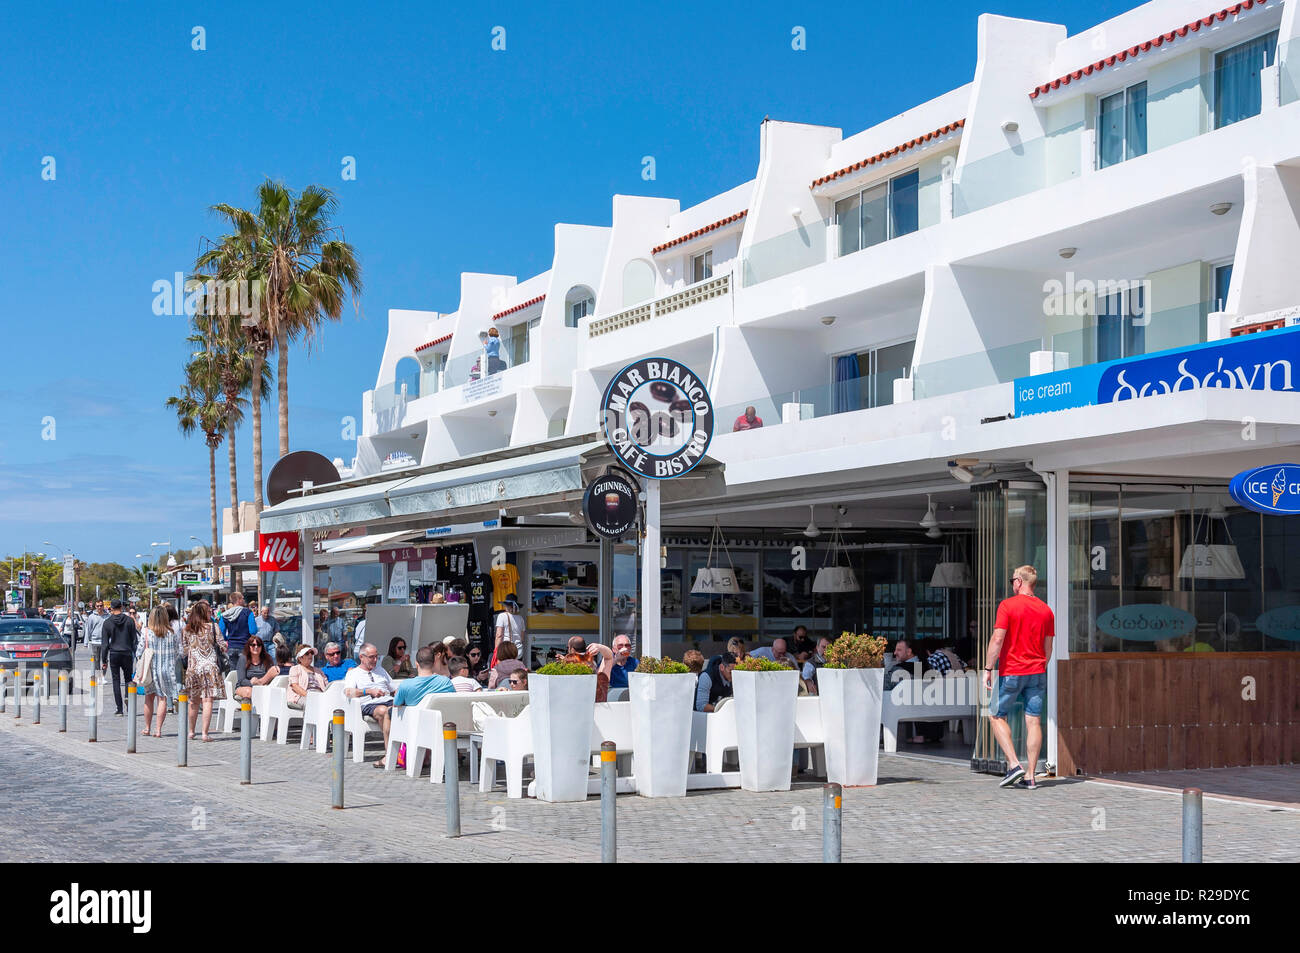 Mar Bianco Cafe Bistro, Poseidonos Avenue, Paphos (Pafos), Pafos District, Republic of Cyprus - Stock Image